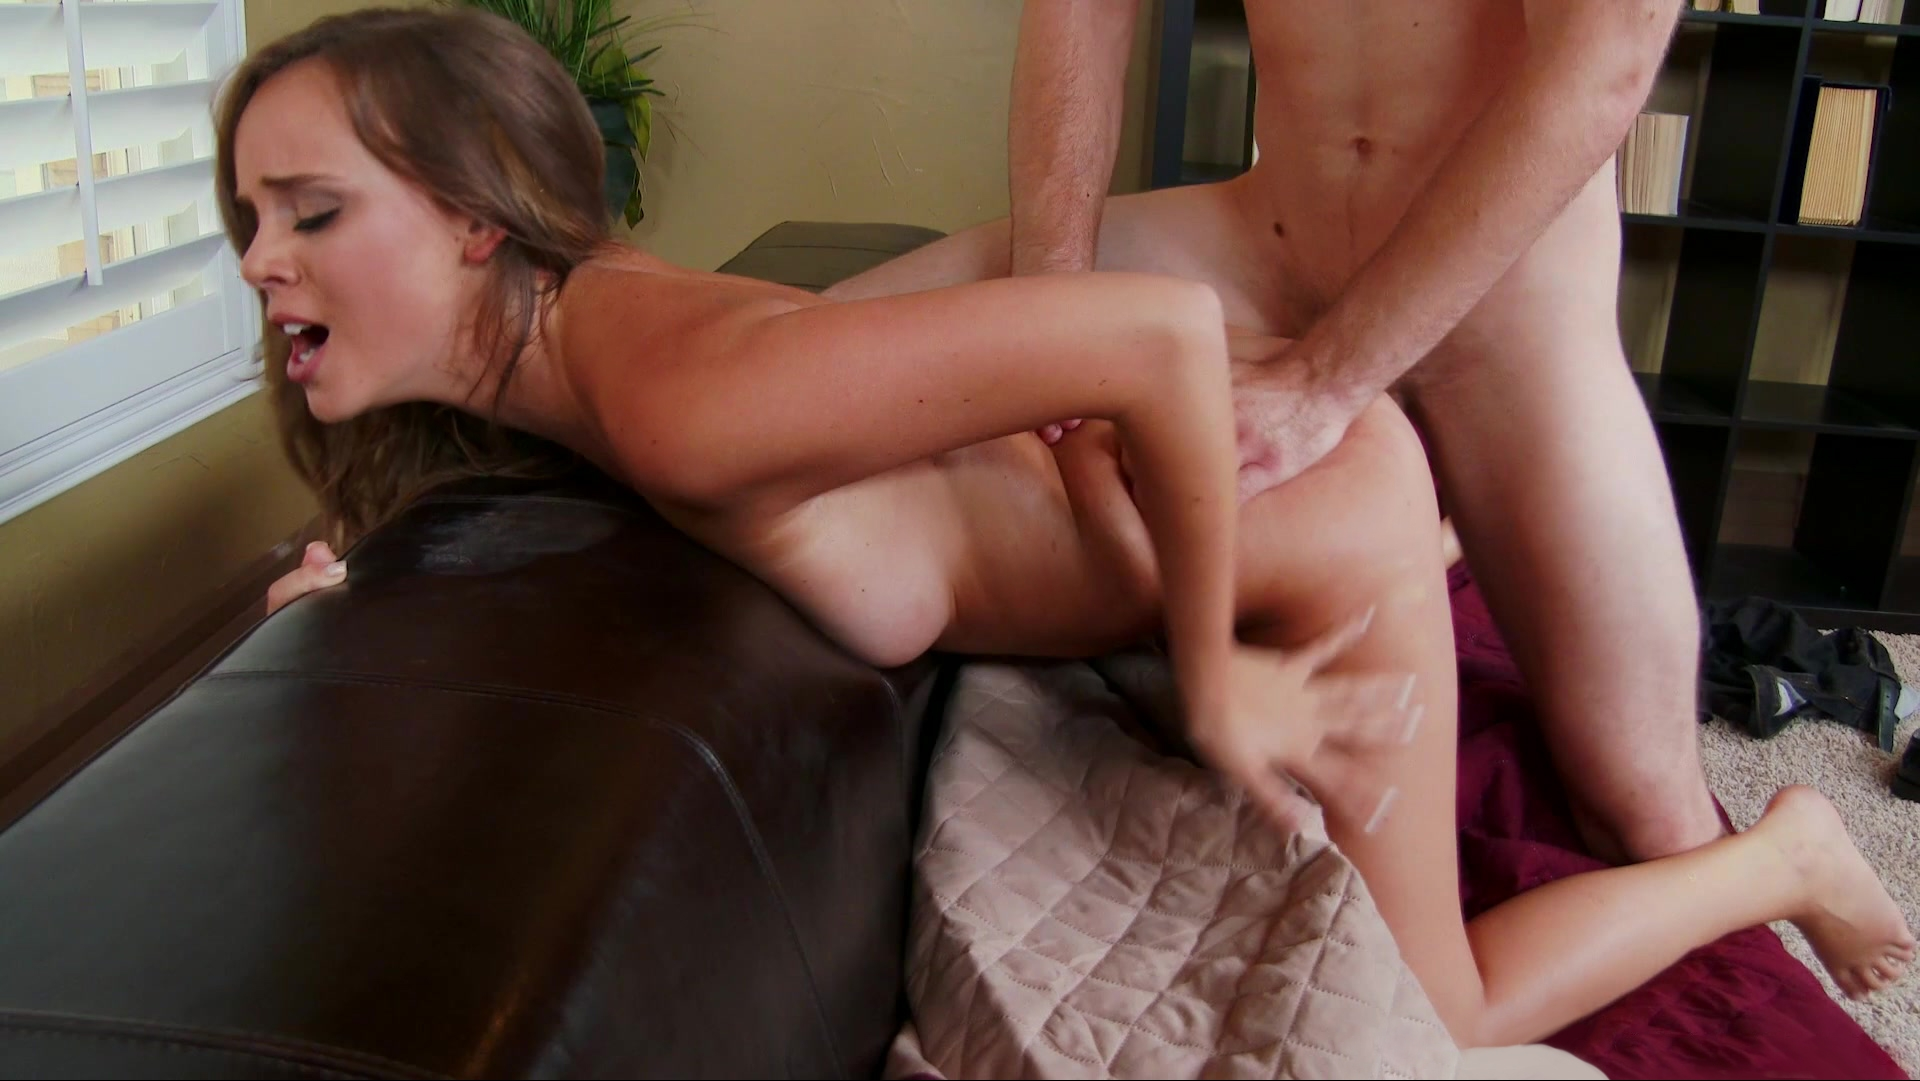 Naughty book worm Alexis Adams mom dominated by son porn video